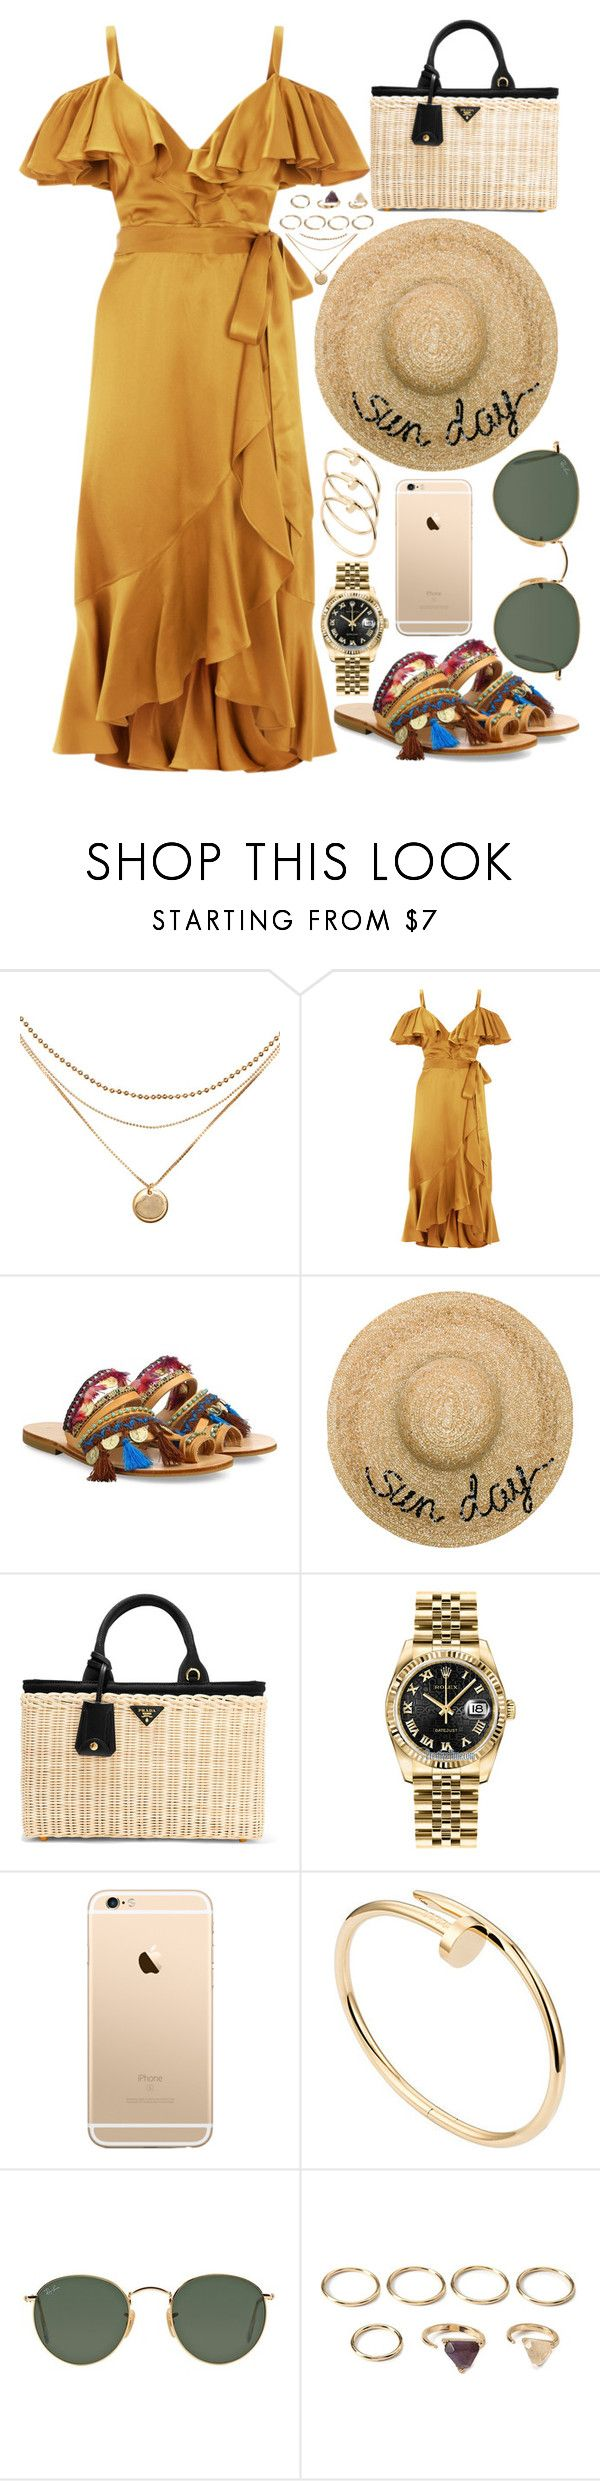 """""""inspired farmer's market outfit"""" by crisarranz on Polyvore featuring Temperley London, Elina Linardaki, Eugenia Kim, Prada, Rolex, Cartier, Ray-Ban and Forever 21"""